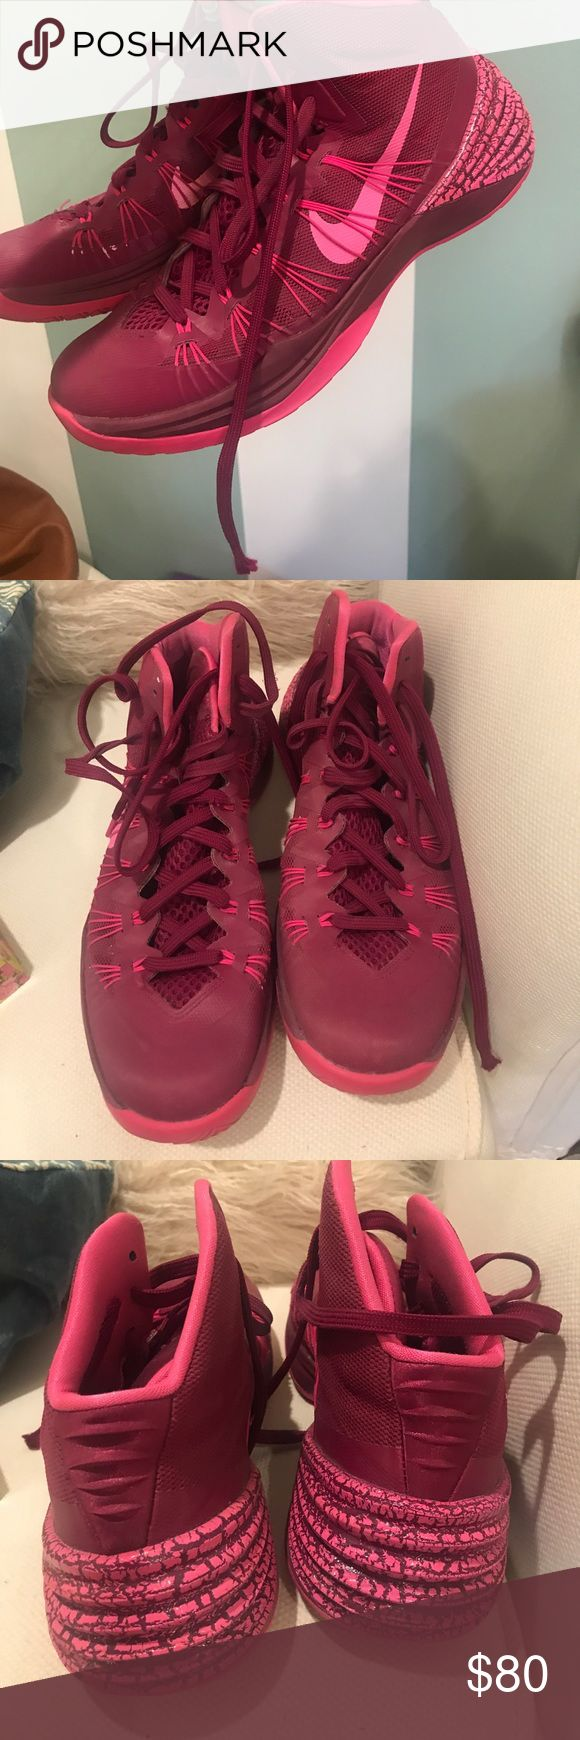 Barely worn pink Nike Hyperdunk basketball shoes Pink basketball shoes (only flaw is aglet of right shoe lace) Nike Shoes Athletic Shoes